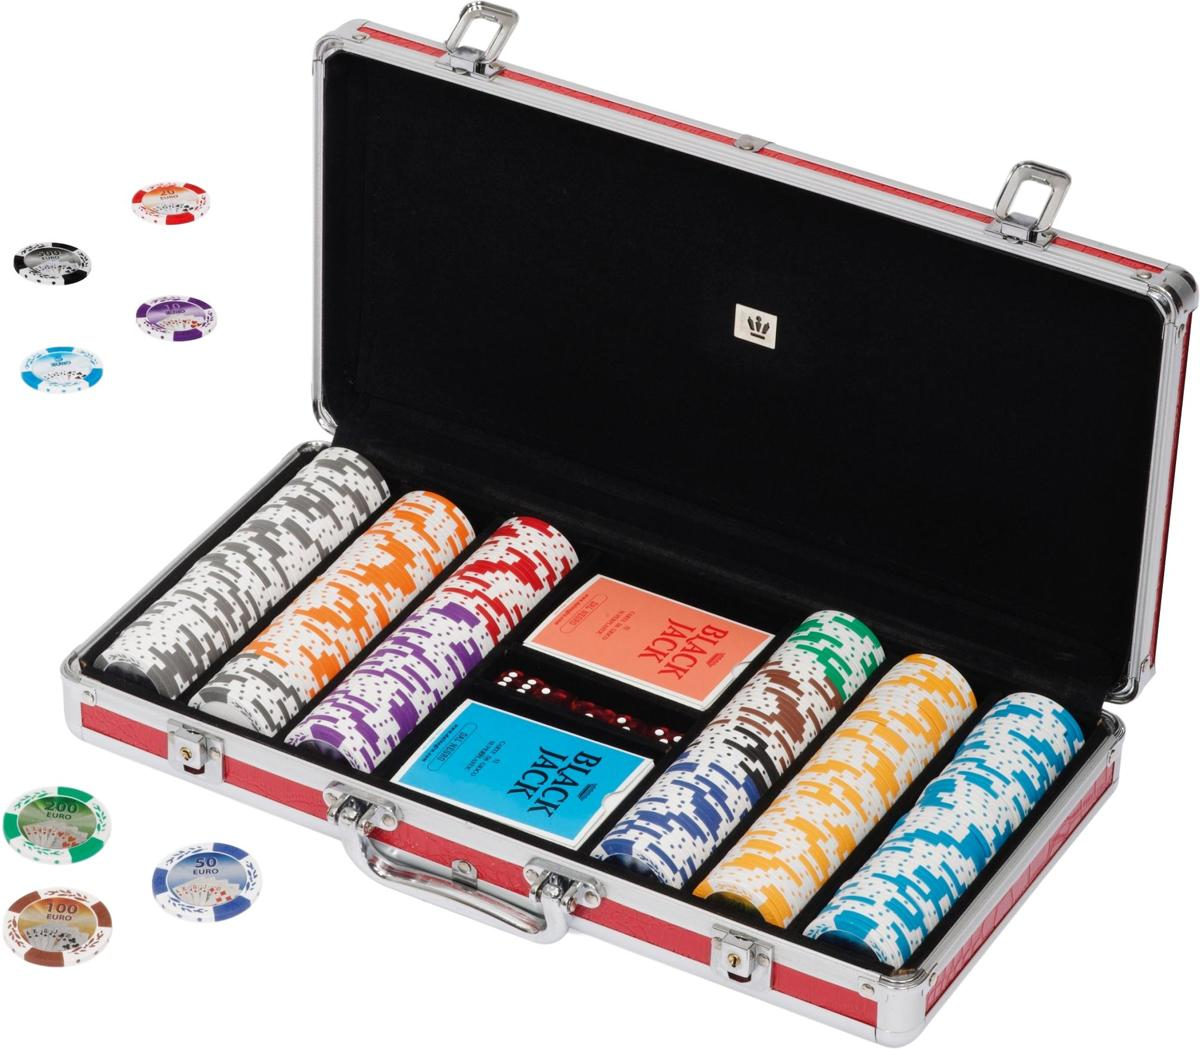 POKERSET 43MM OVERSIZED EURO CHIPS 300 chips